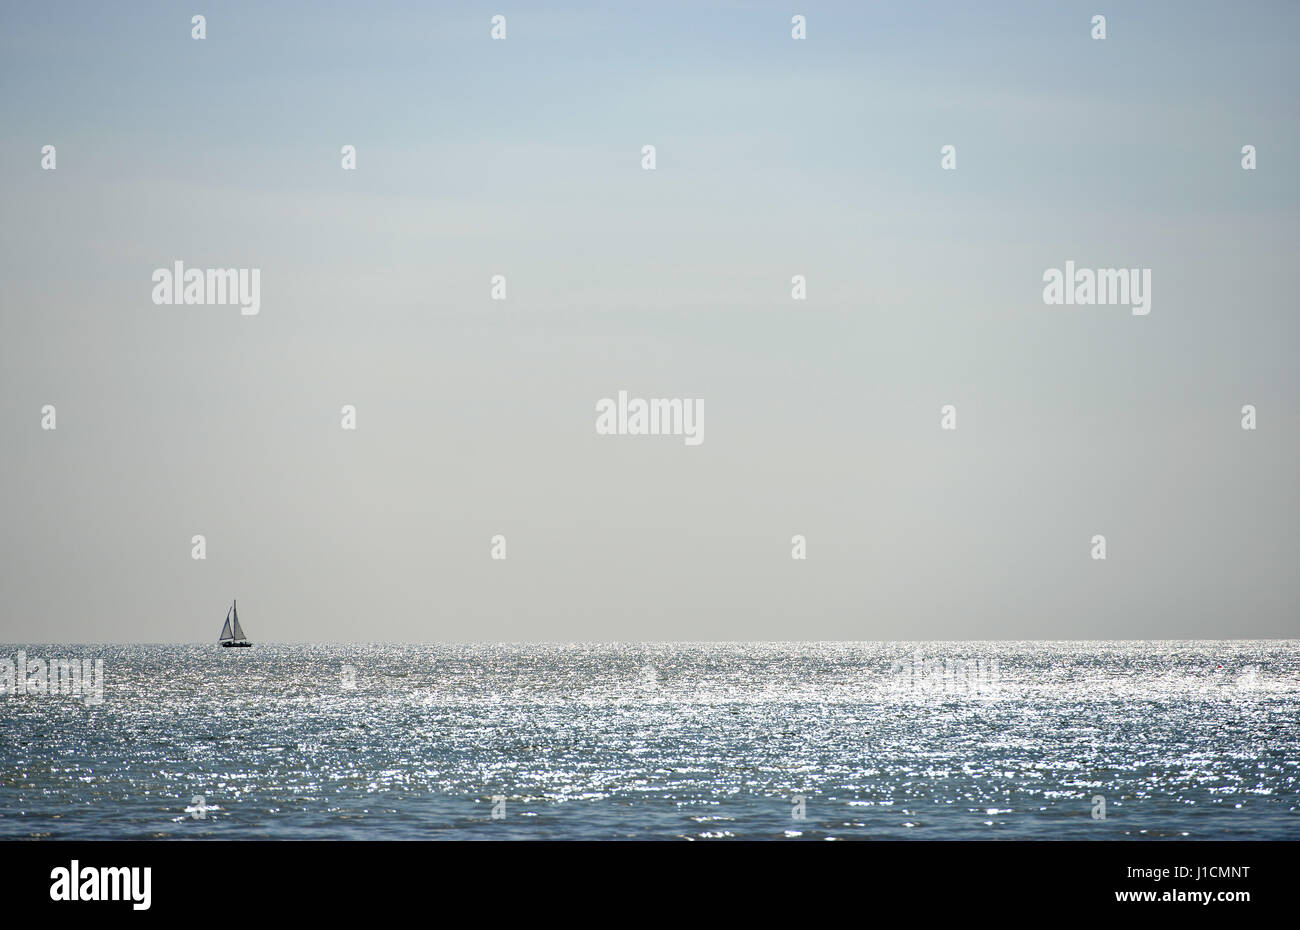 Sail boat dwarfed by sky and sea - Stock Image